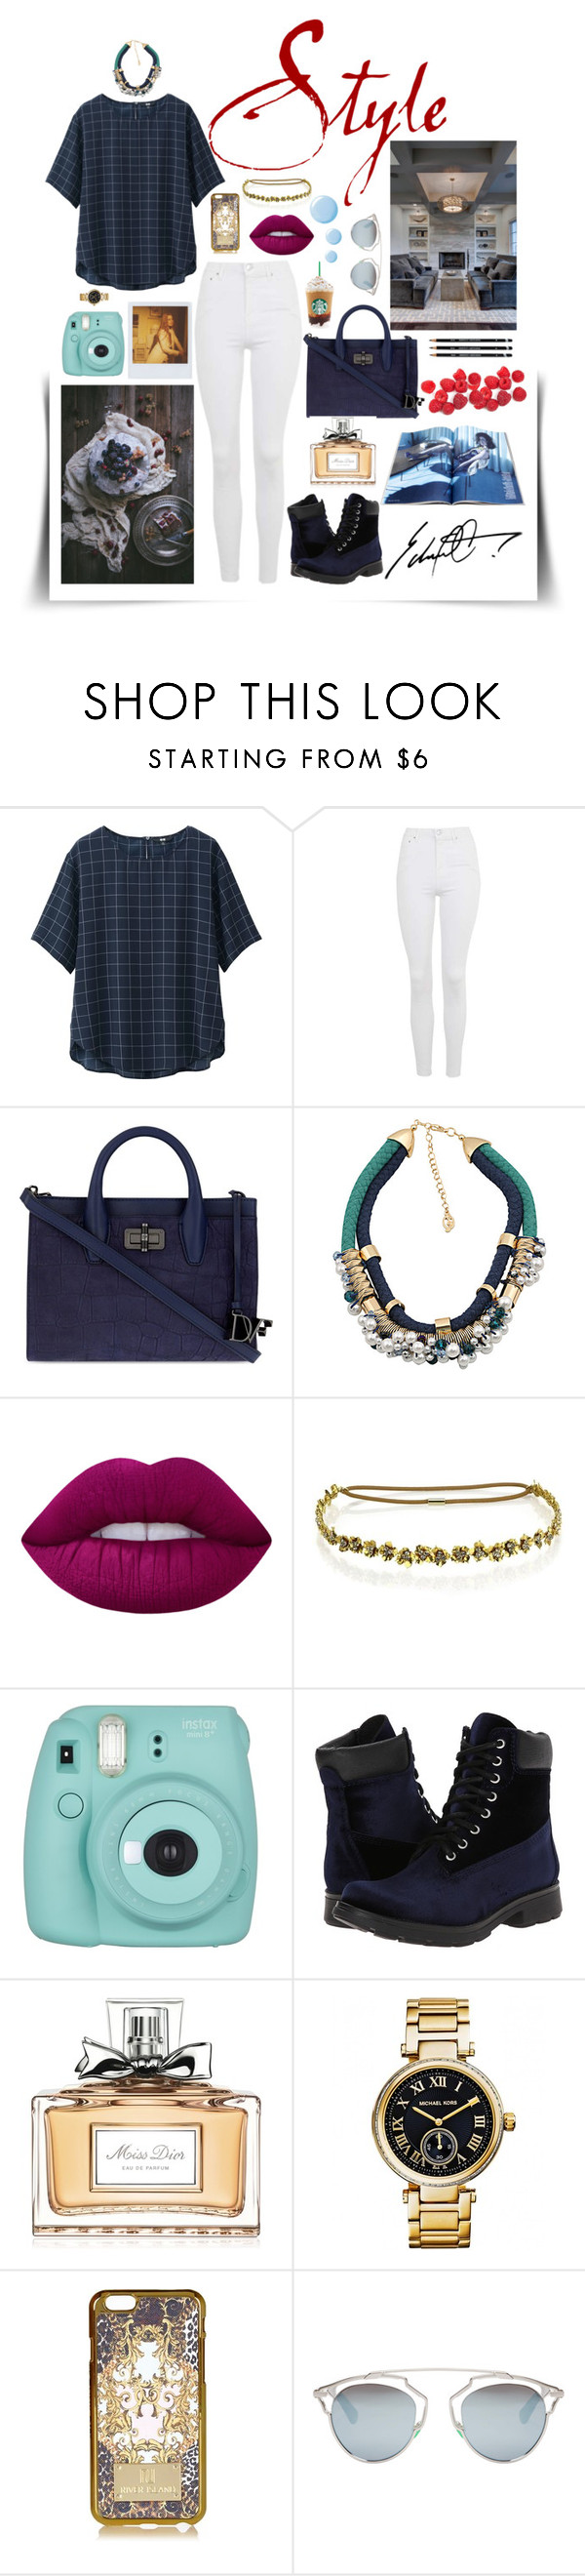 """STYLE 555"" by carmen-alejandra on Polyvore featuring moda, Uniqlo, Topshop, Diane Von Furstenberg, Chicnova Fashion, Band of Outsiders, Lime Crime, Jennifer Behr, Steve Madden y Christian Dior"